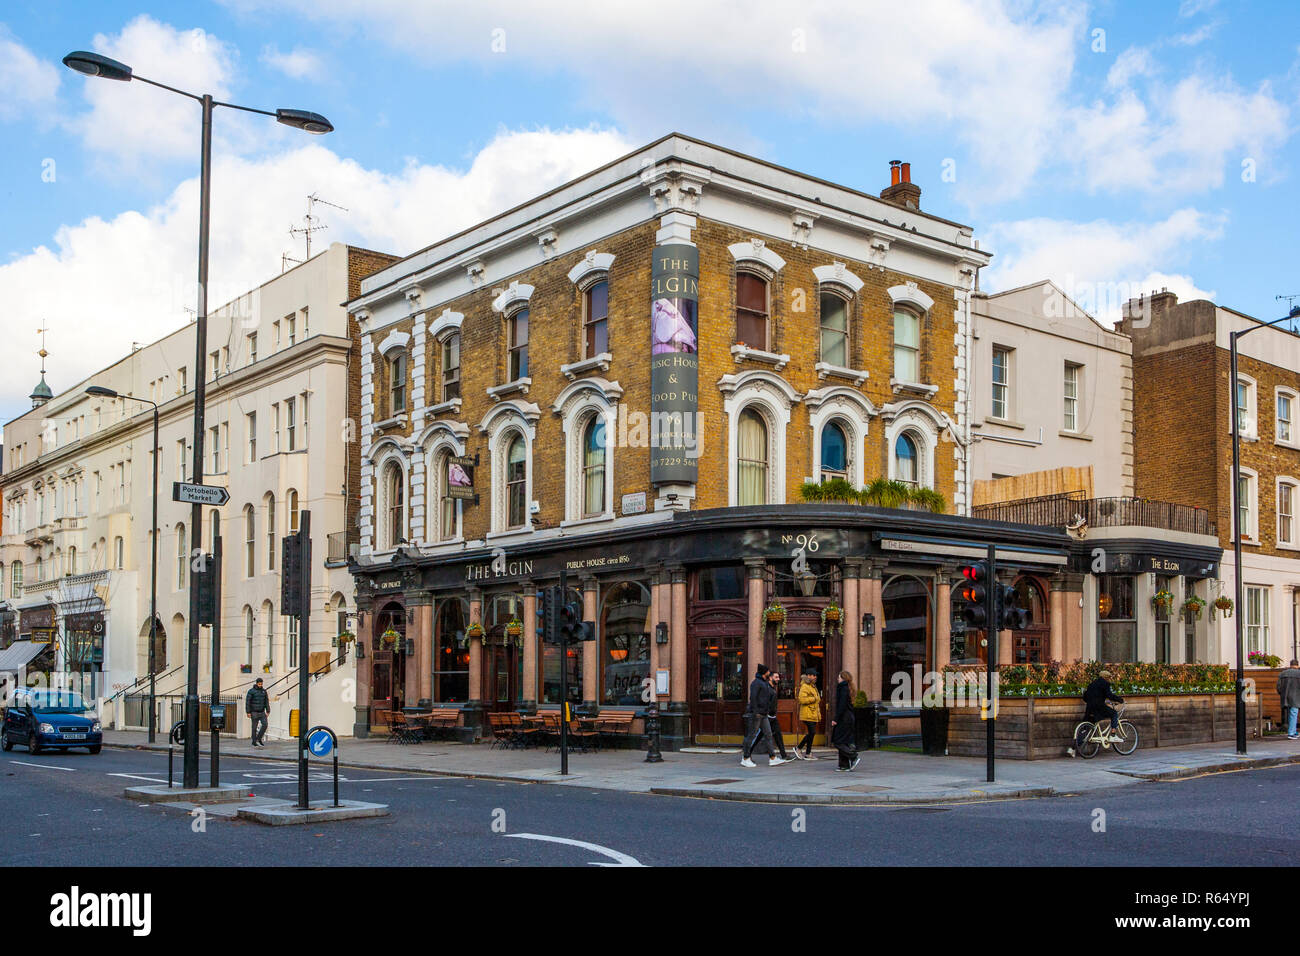 Notting Hill Ladbroke Grove ladbroke grove high resolution stock photography and images